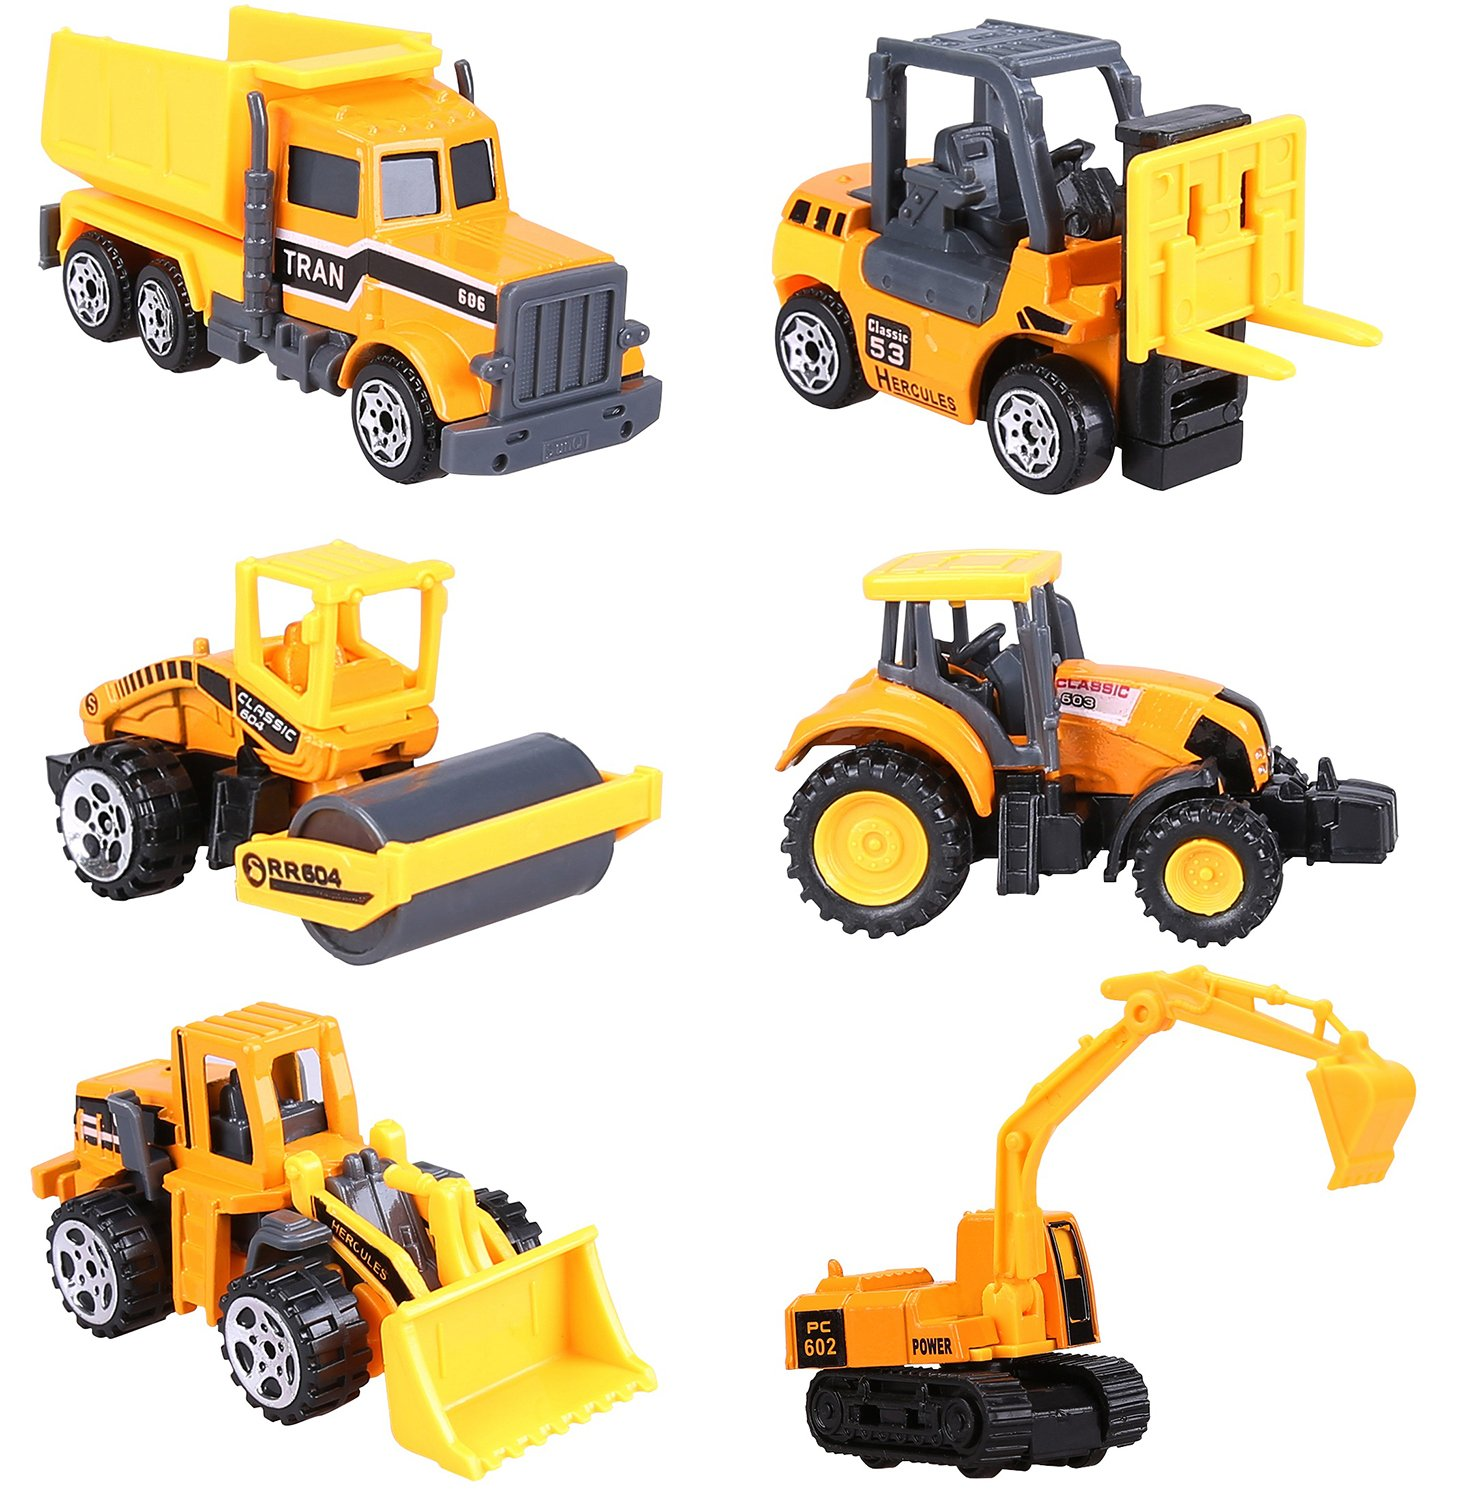 Cltoyvers 6 Pcs Mini Metal Construction Vehicle Toys Set Kids - Forklift, Bulldozer, Road Roller, Excavator, Dump Truck, Tractor, Diecast Construction Site Vehicles Toy Gift 3, 4, 5 Years Old